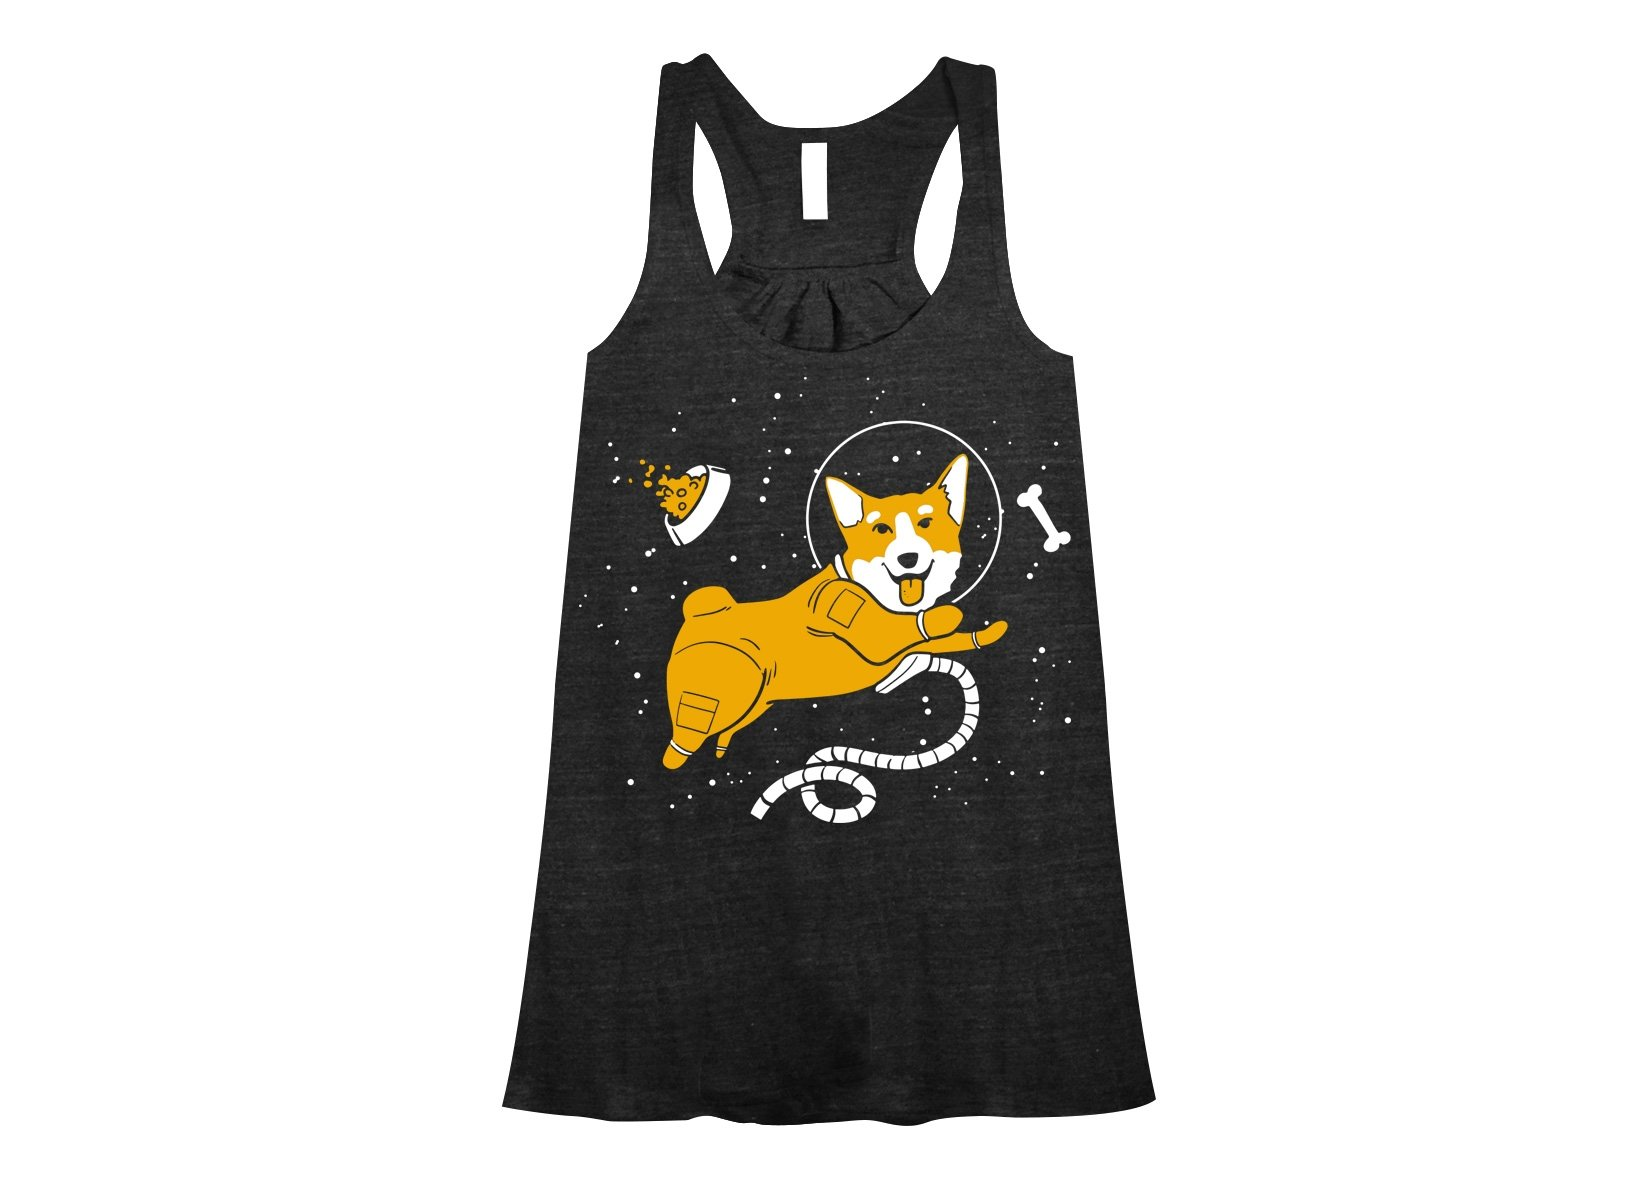 Astrocorg on Womens Tanks T-Shirt